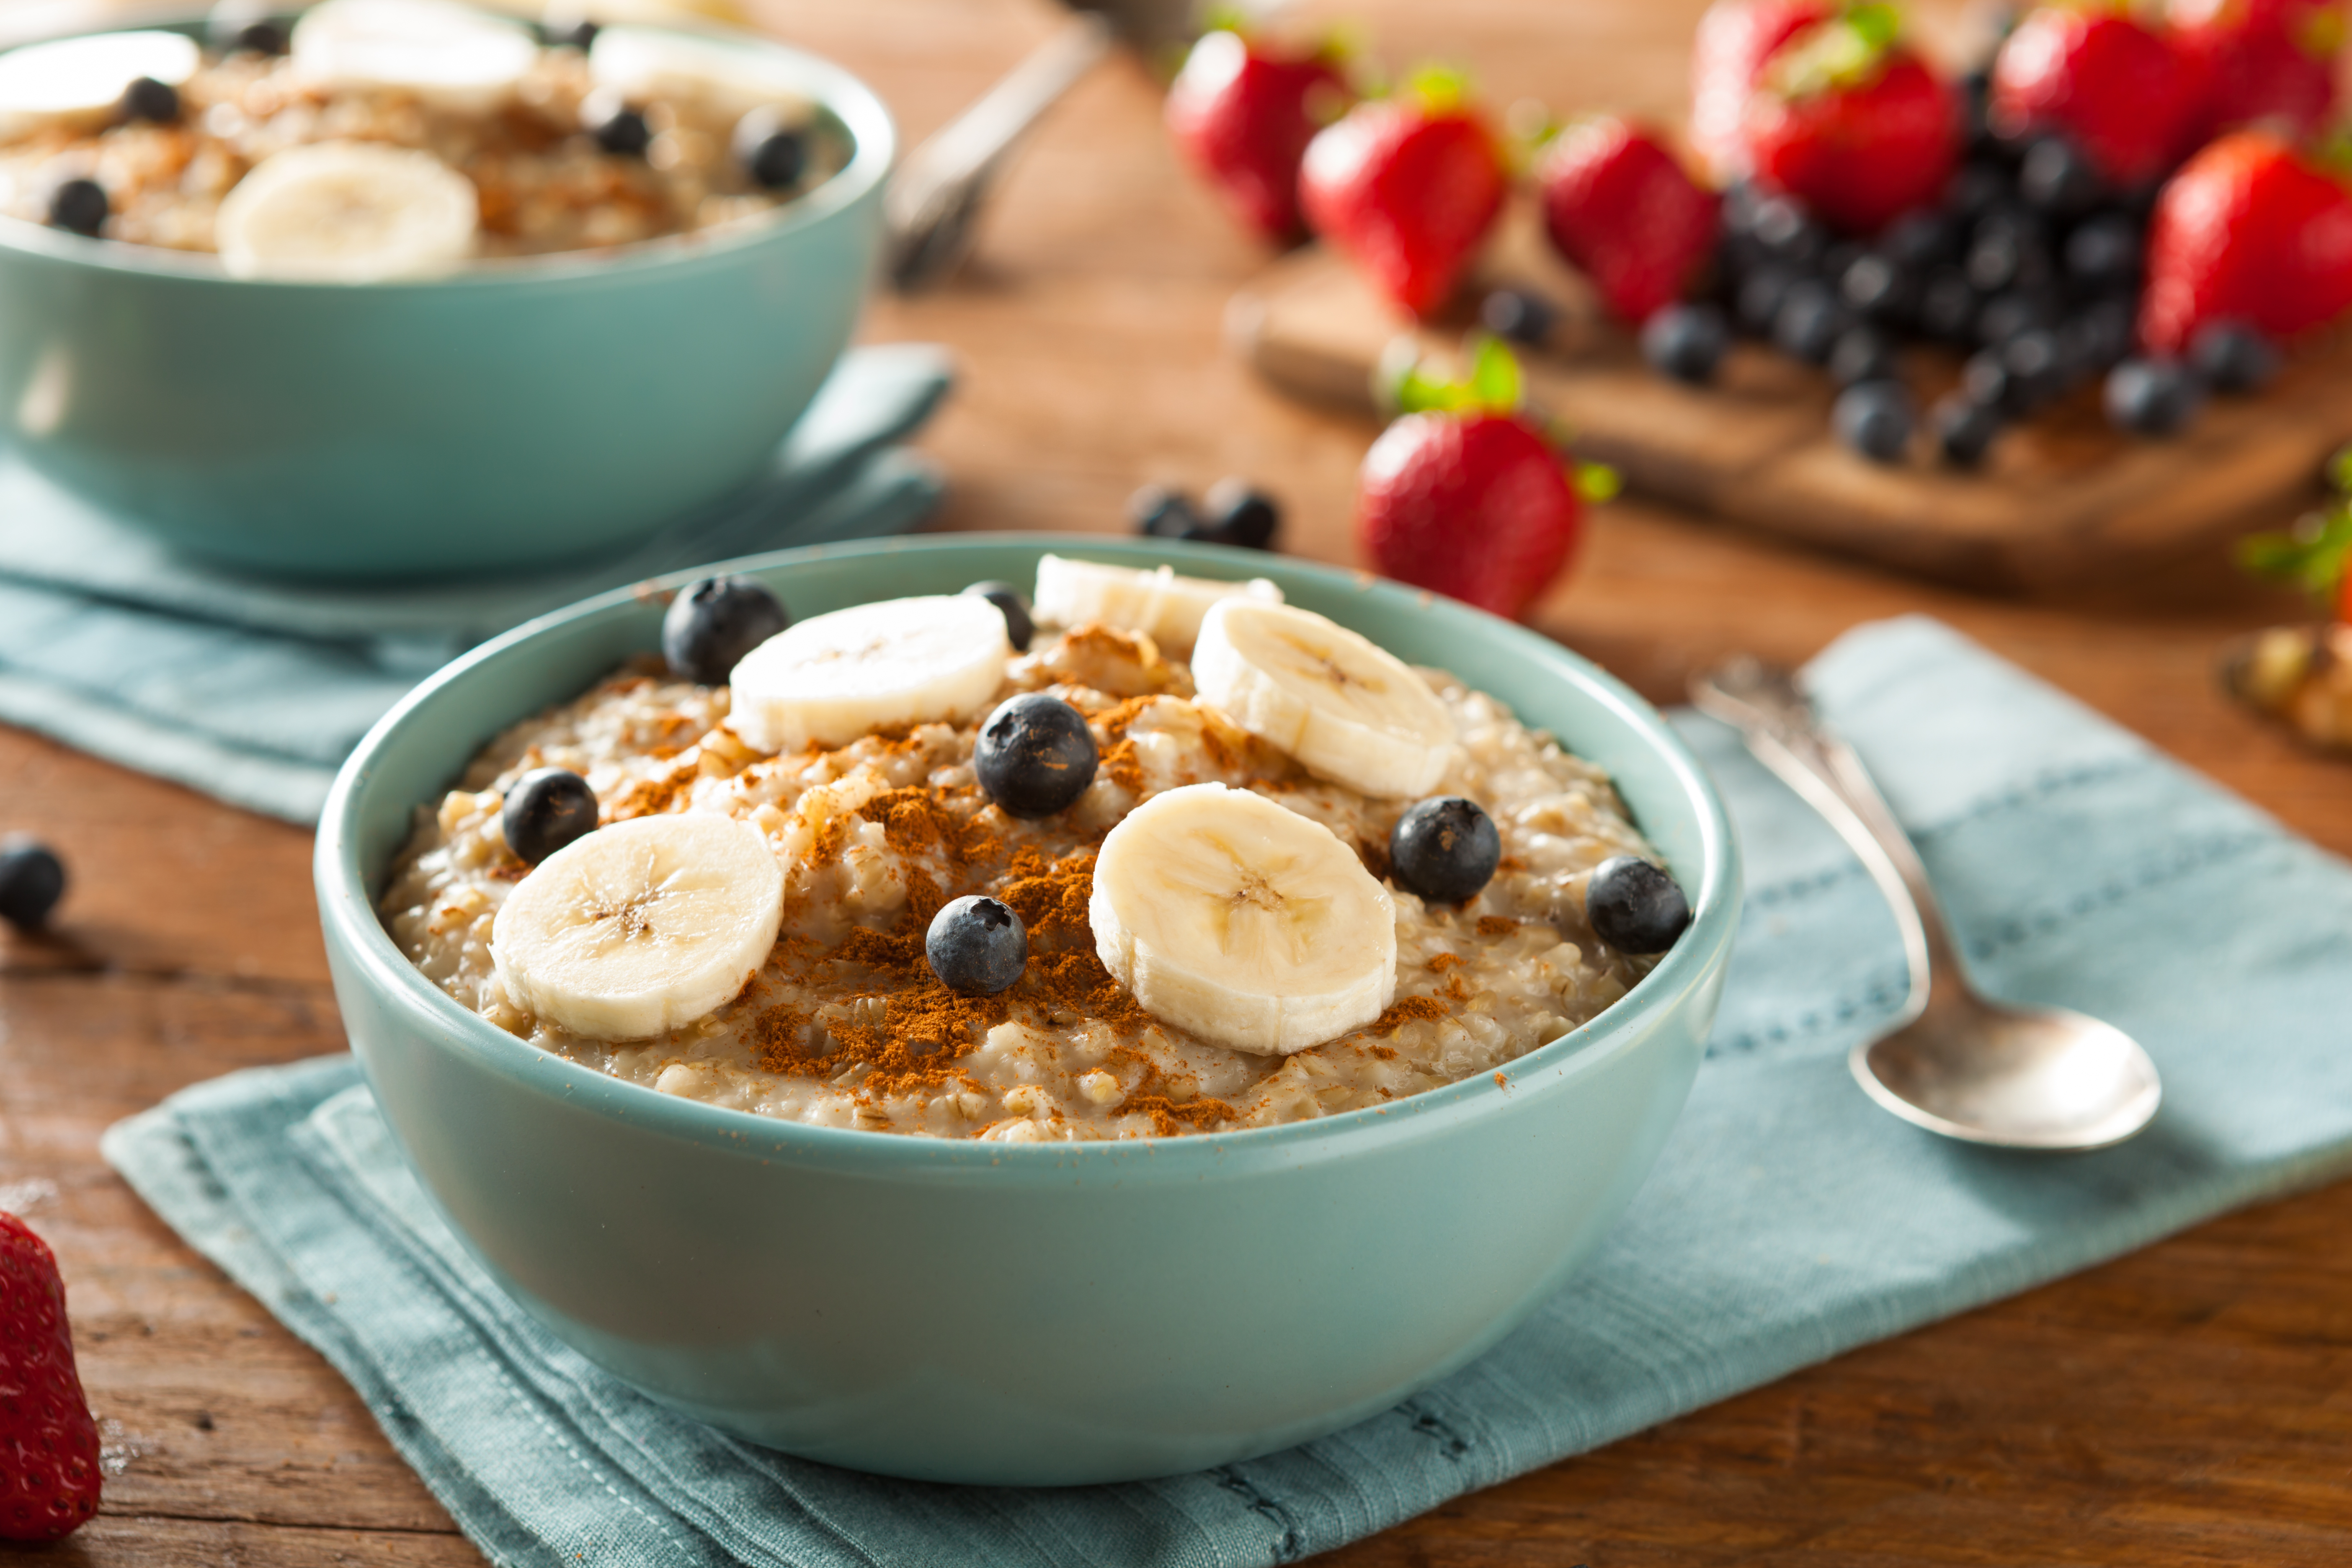 8 Heart-Healthy Oatmeal Recipes to Try If You're Over 50